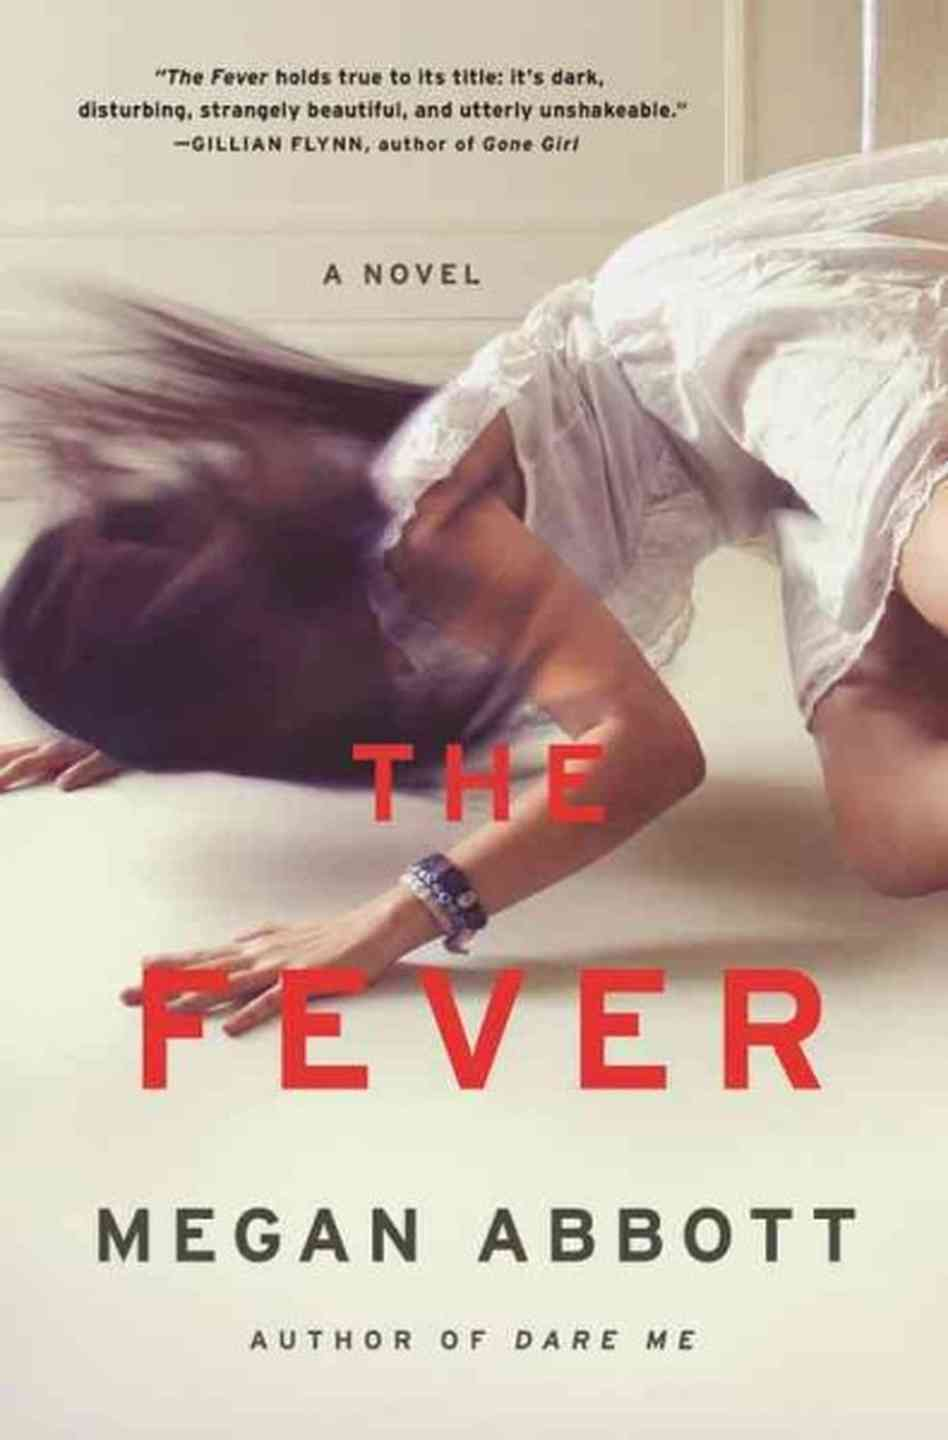 The Fever Megan Abbott